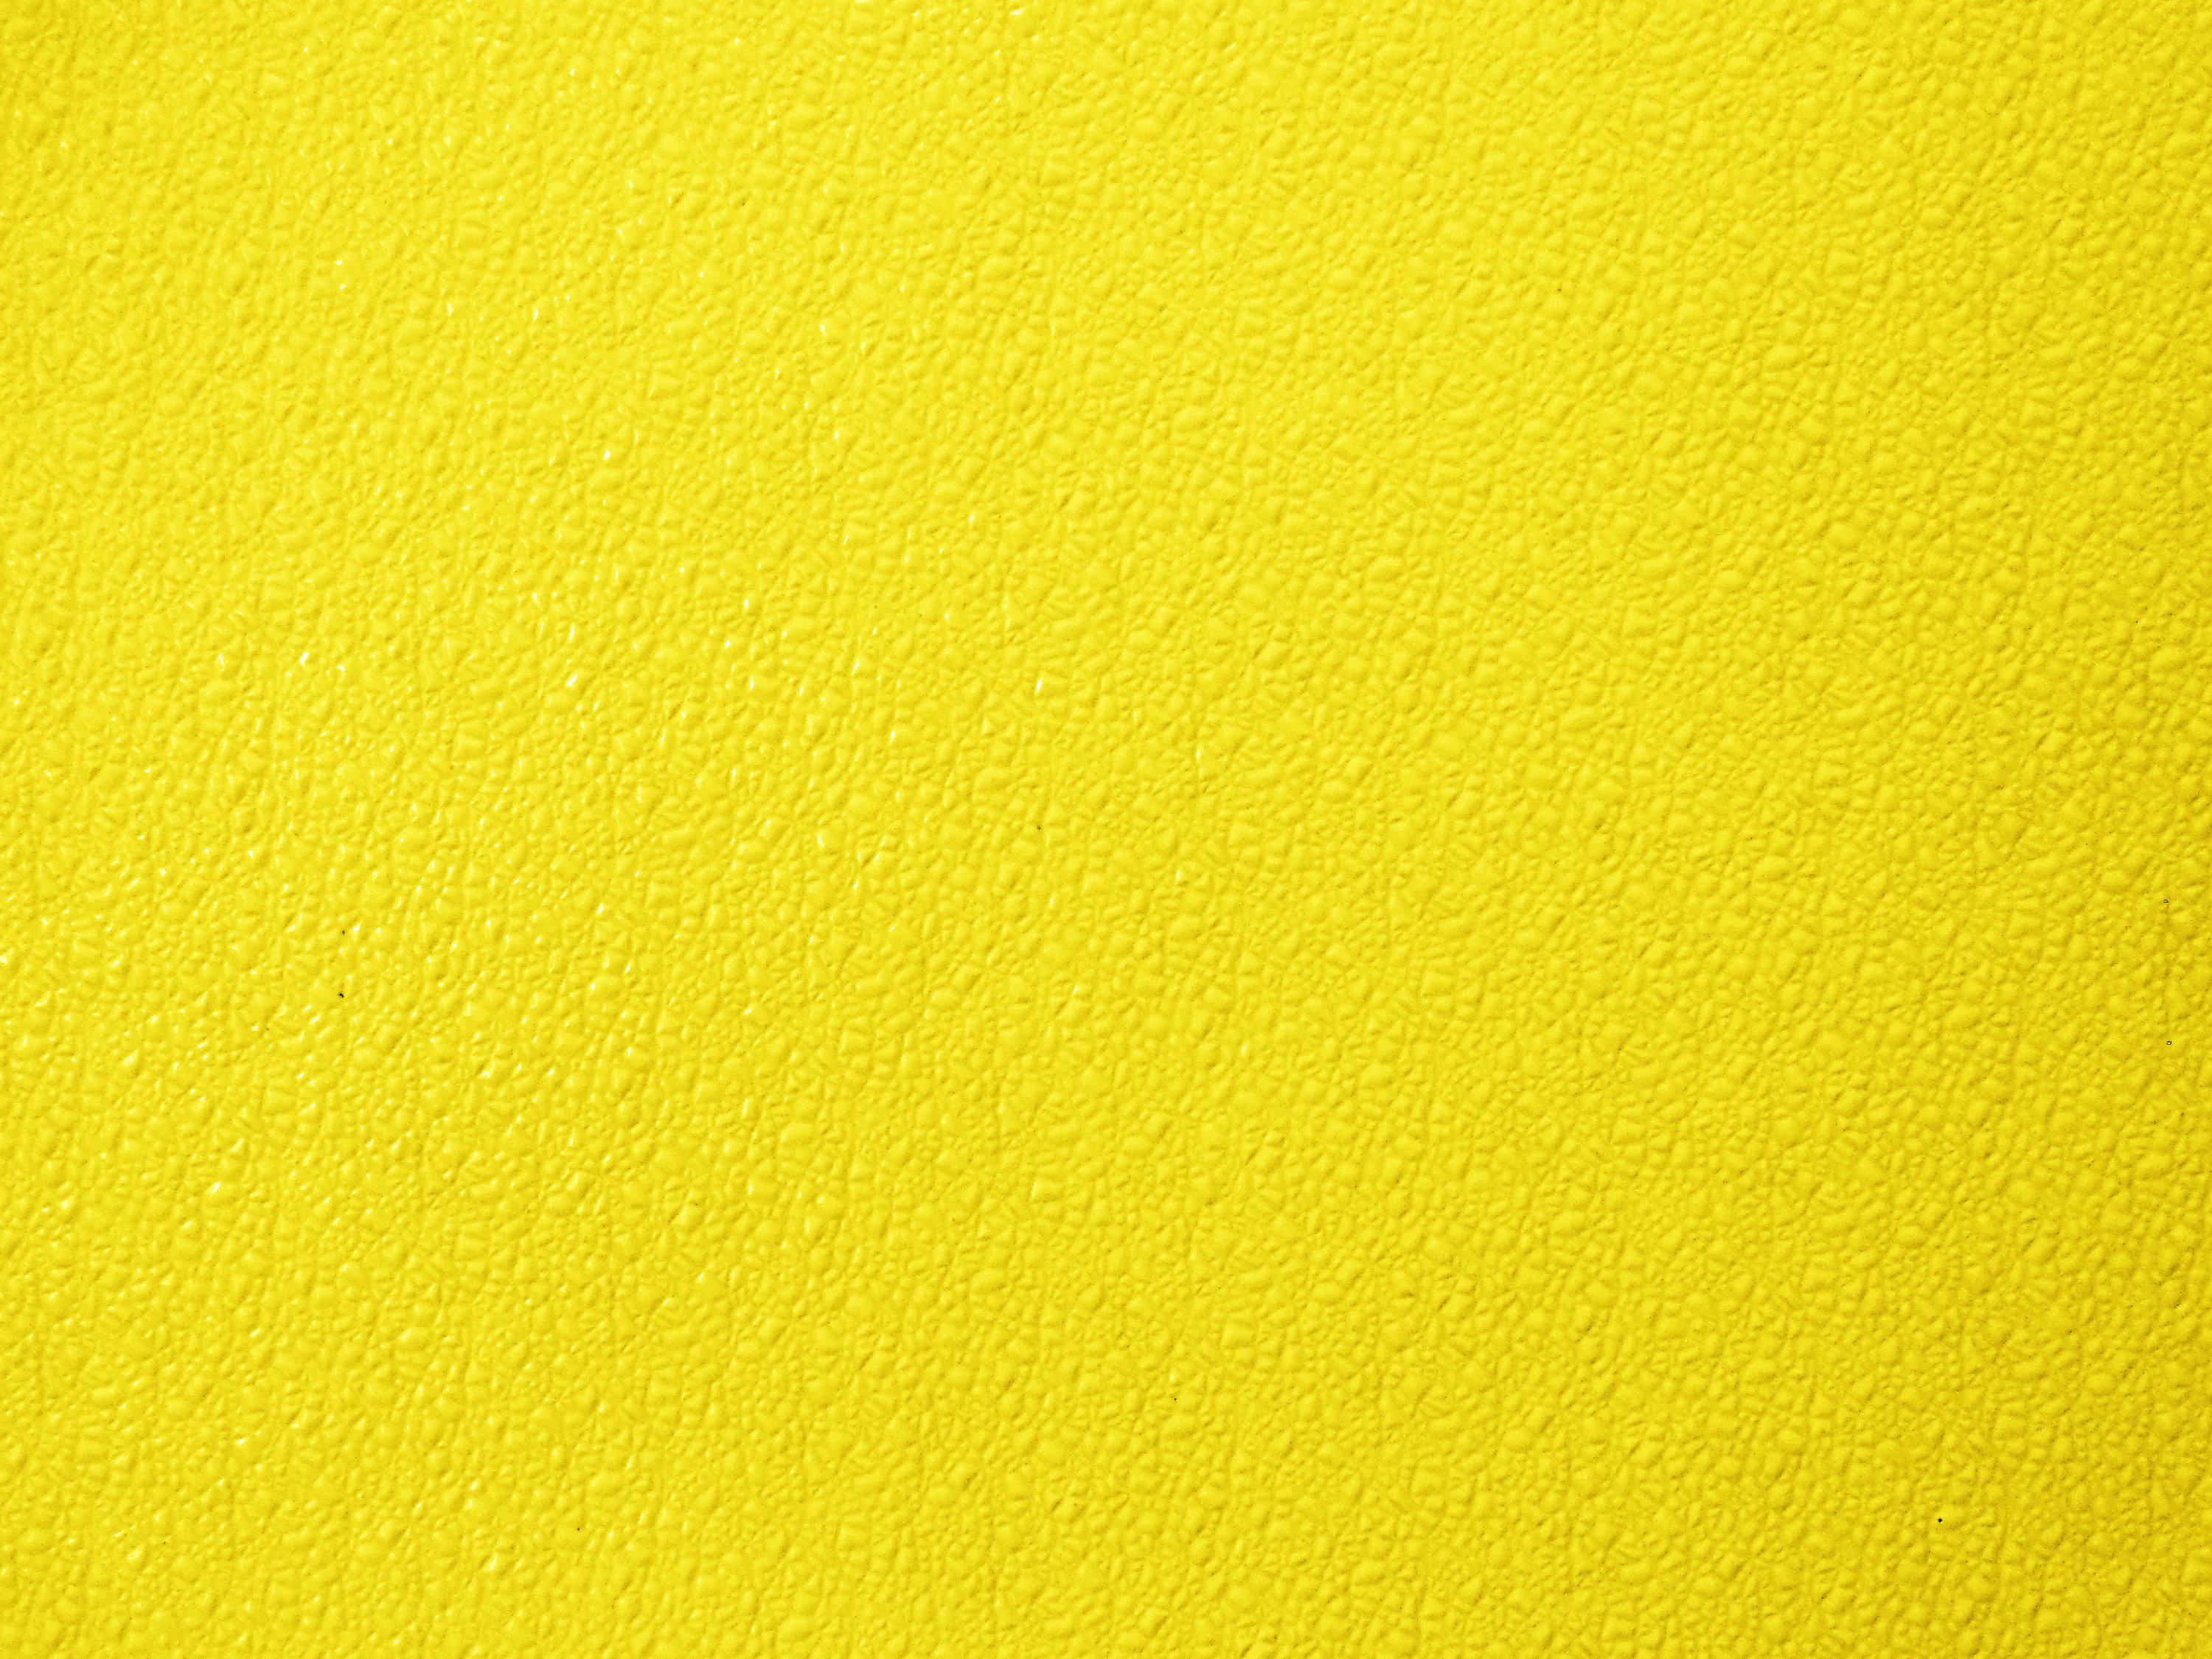 The meaning and symbolism of the word - Yellow